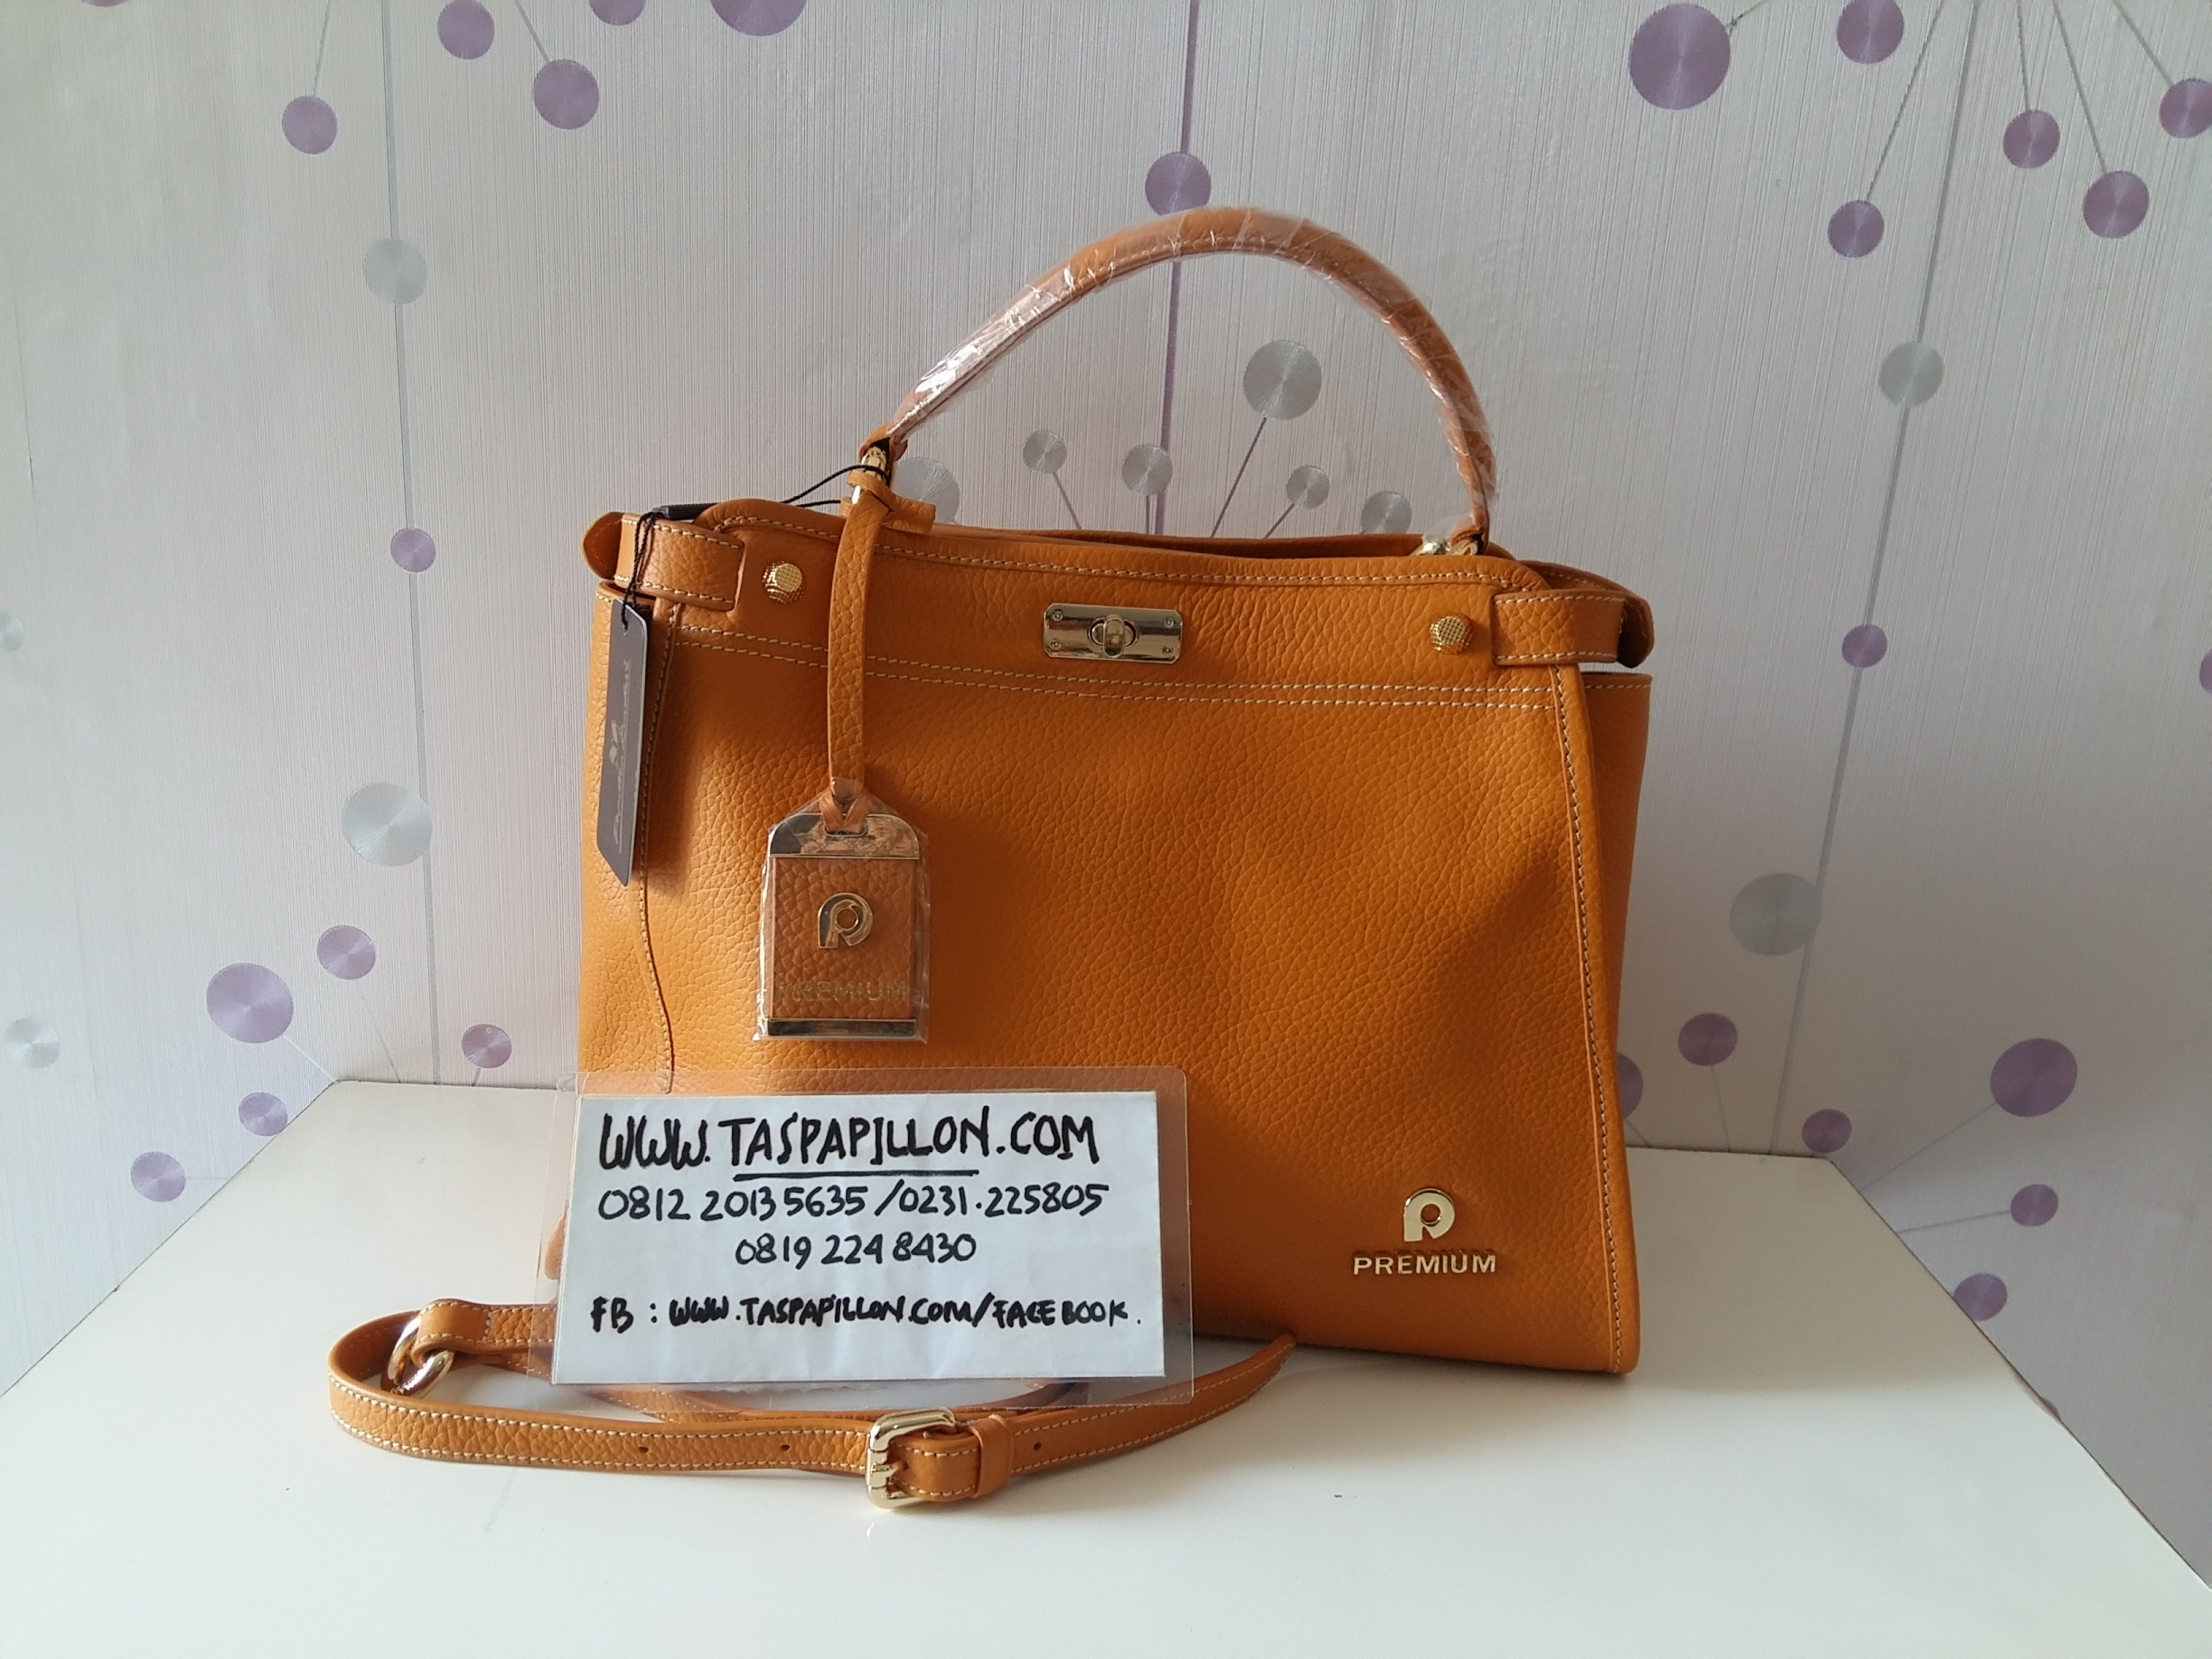 Tas Papillon Archives - Website Resmi Reseller Tas Papillon Original a4611f4480